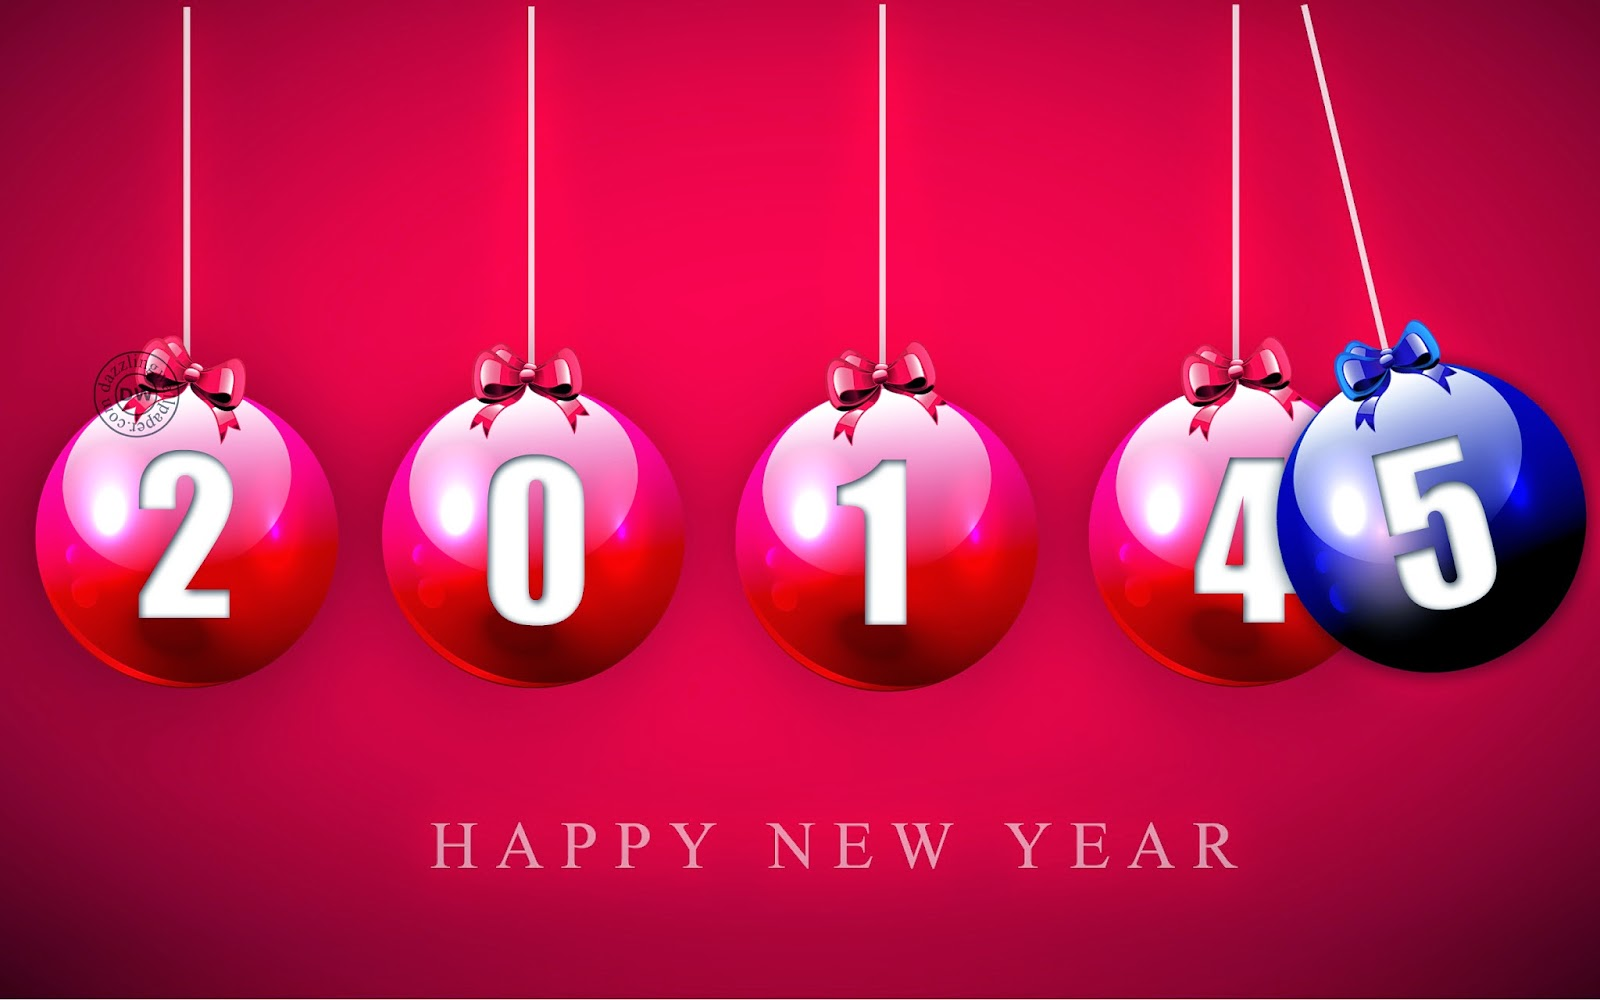 Happy New Year 2016 Songs for Party